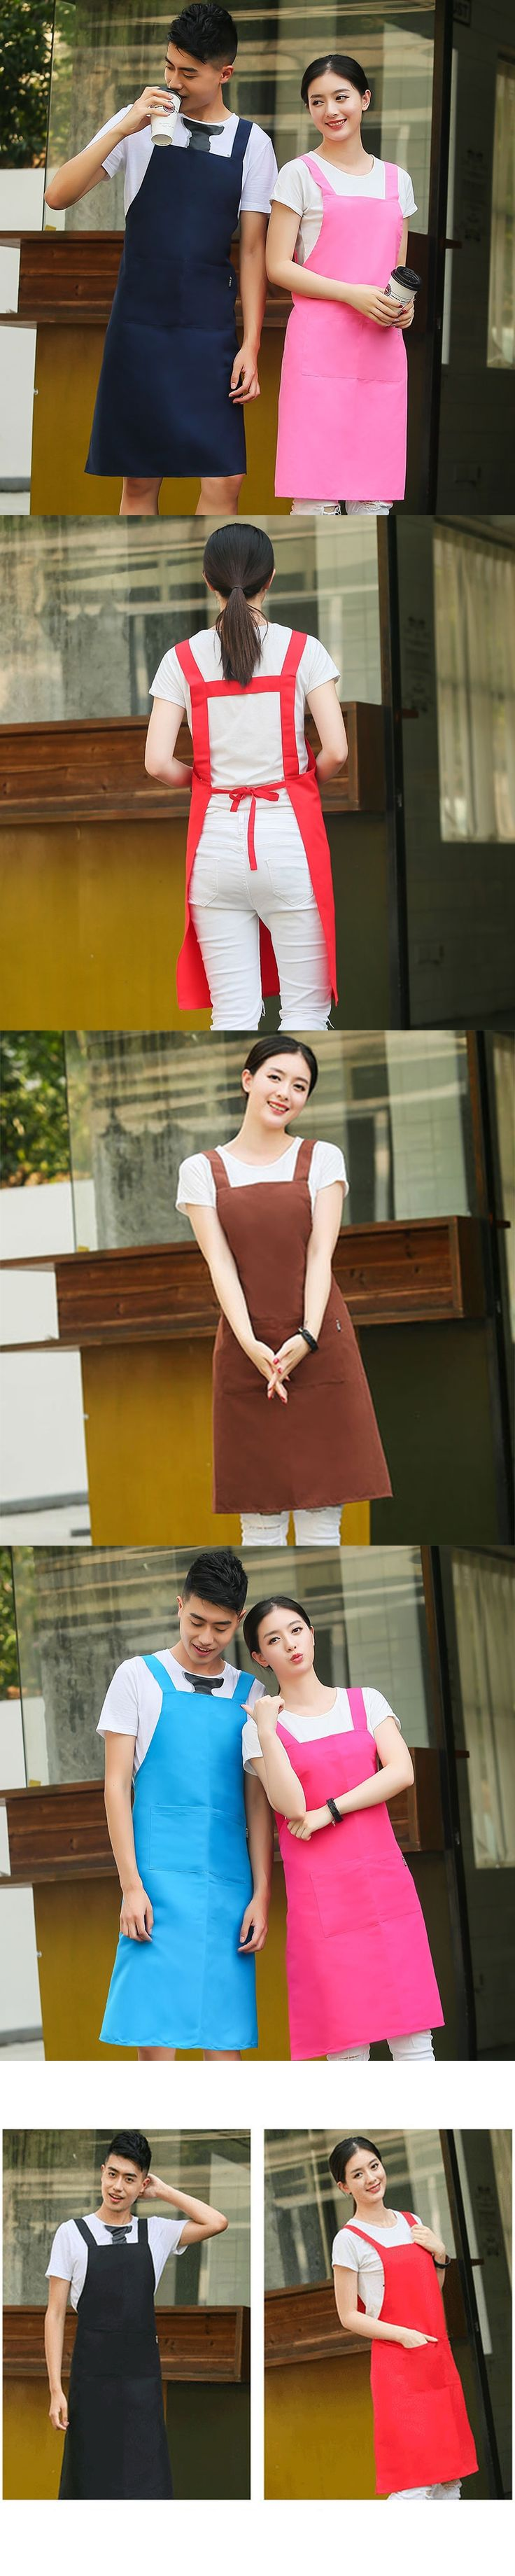 Fashion Men And Women Restaurant Kitchen Waiter Work Overalls Cooking Baking Coffee Shop Simple Waterproof Apron logo Customize